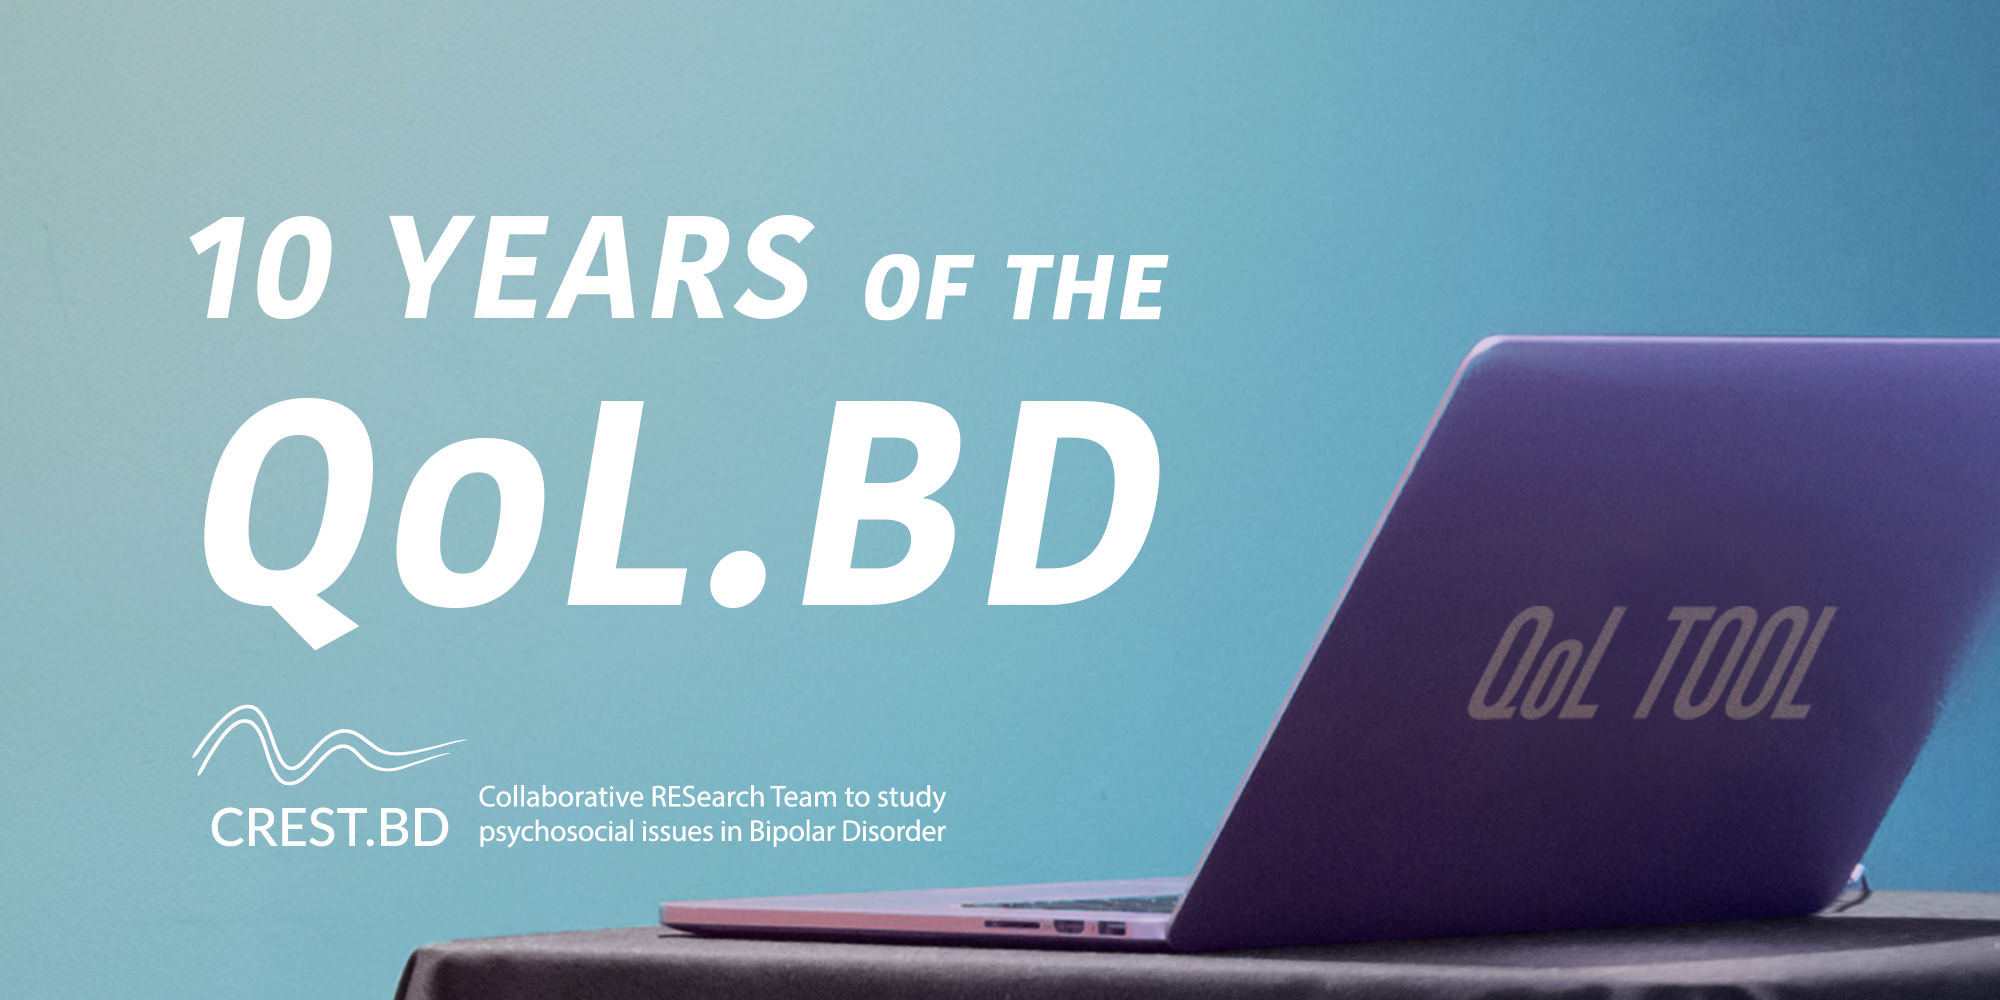 New Publication: Reflecting on 10 Years of the QoL.BD